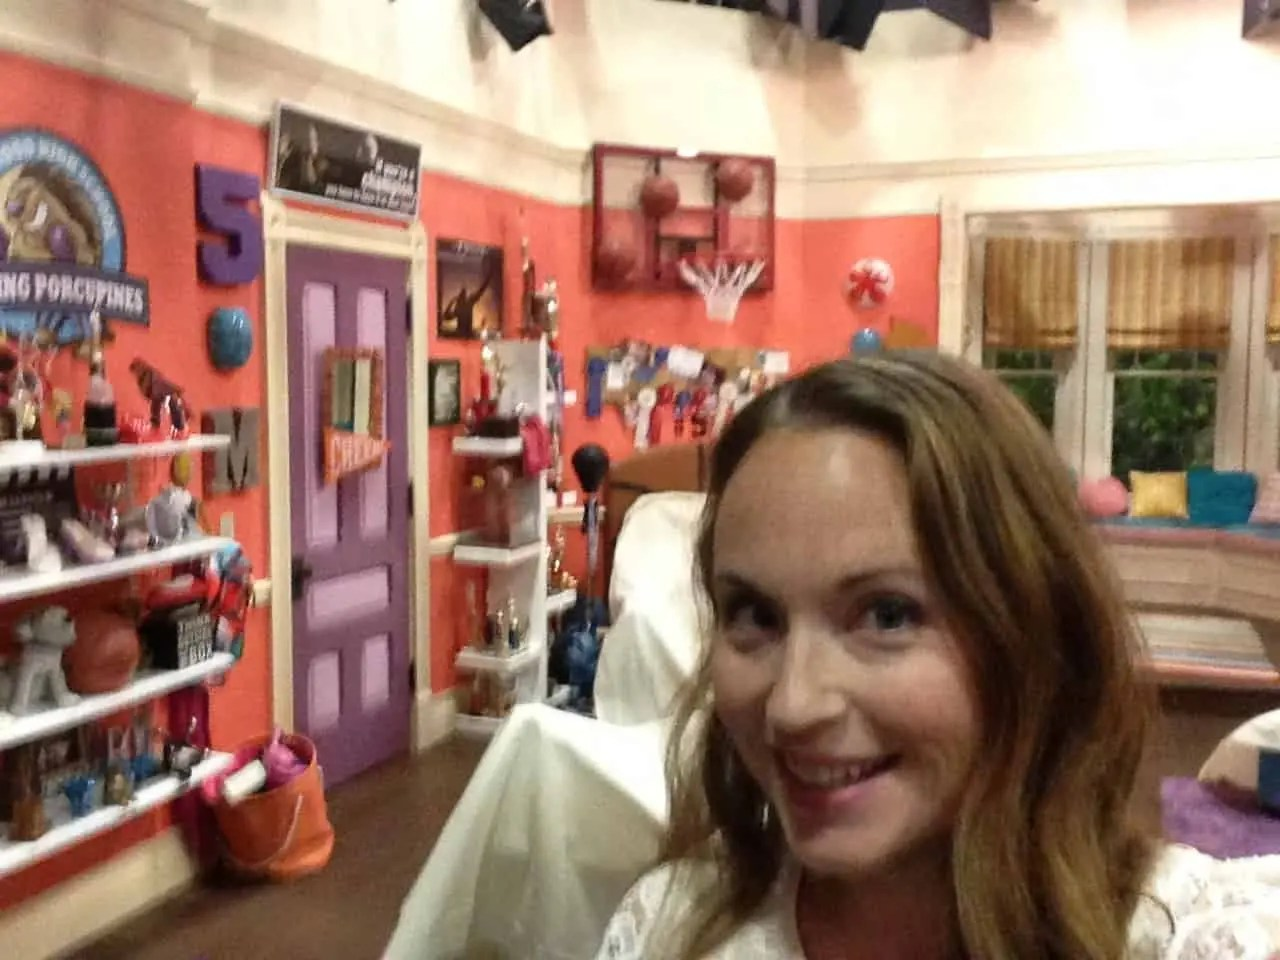 A Chat With Kali Rocha From The Disney Channel Show Quot Liv